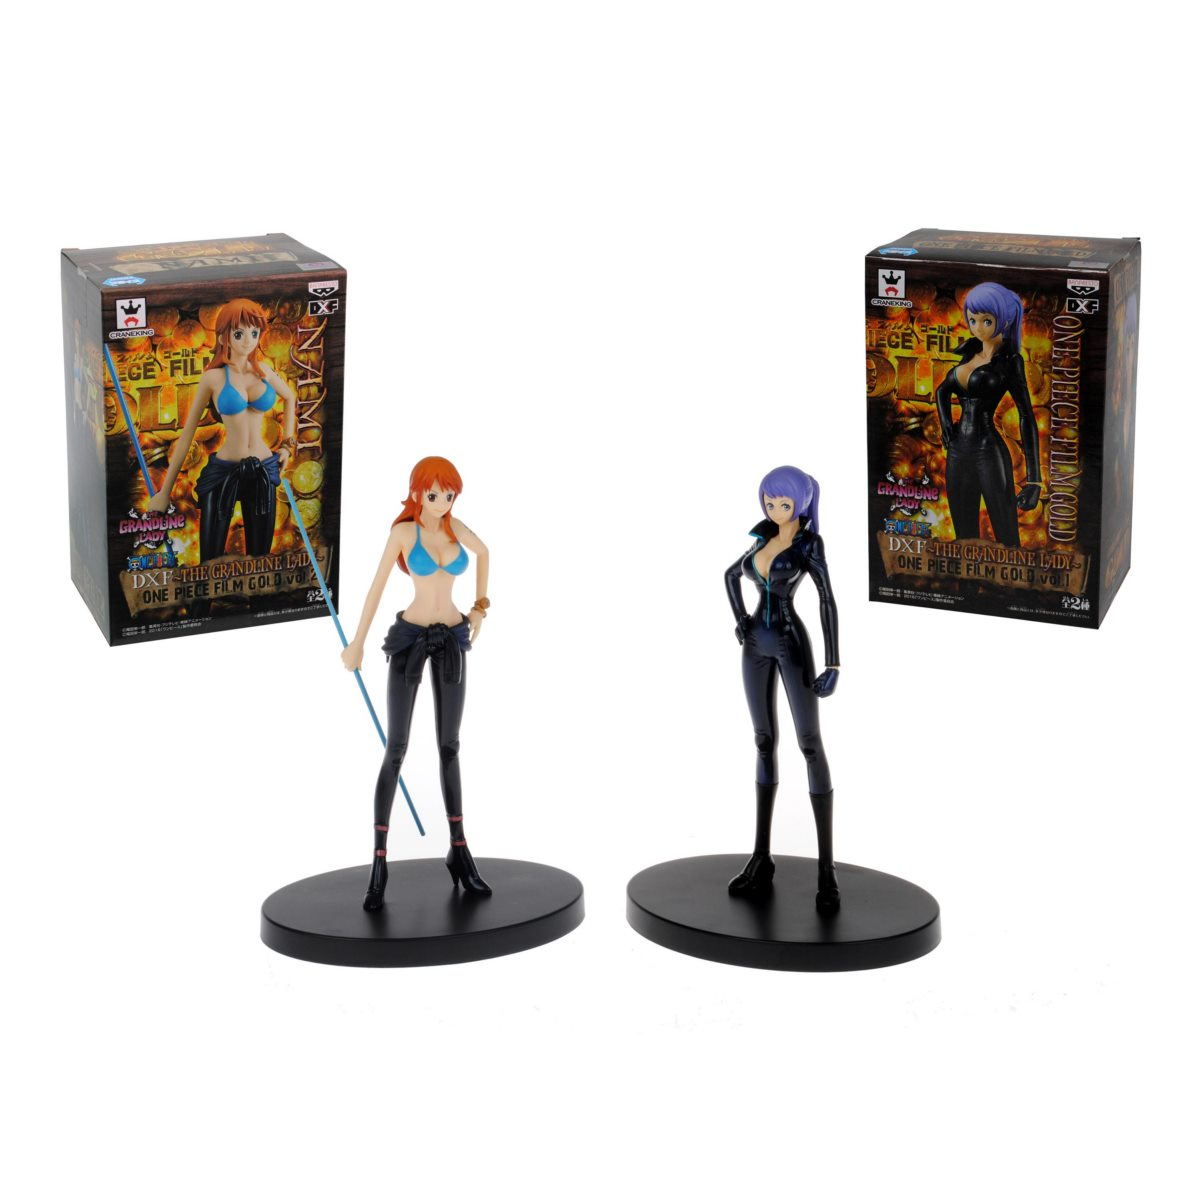 COLLECTORS Figura 15 Cm. One Piece Dxf The Grandli